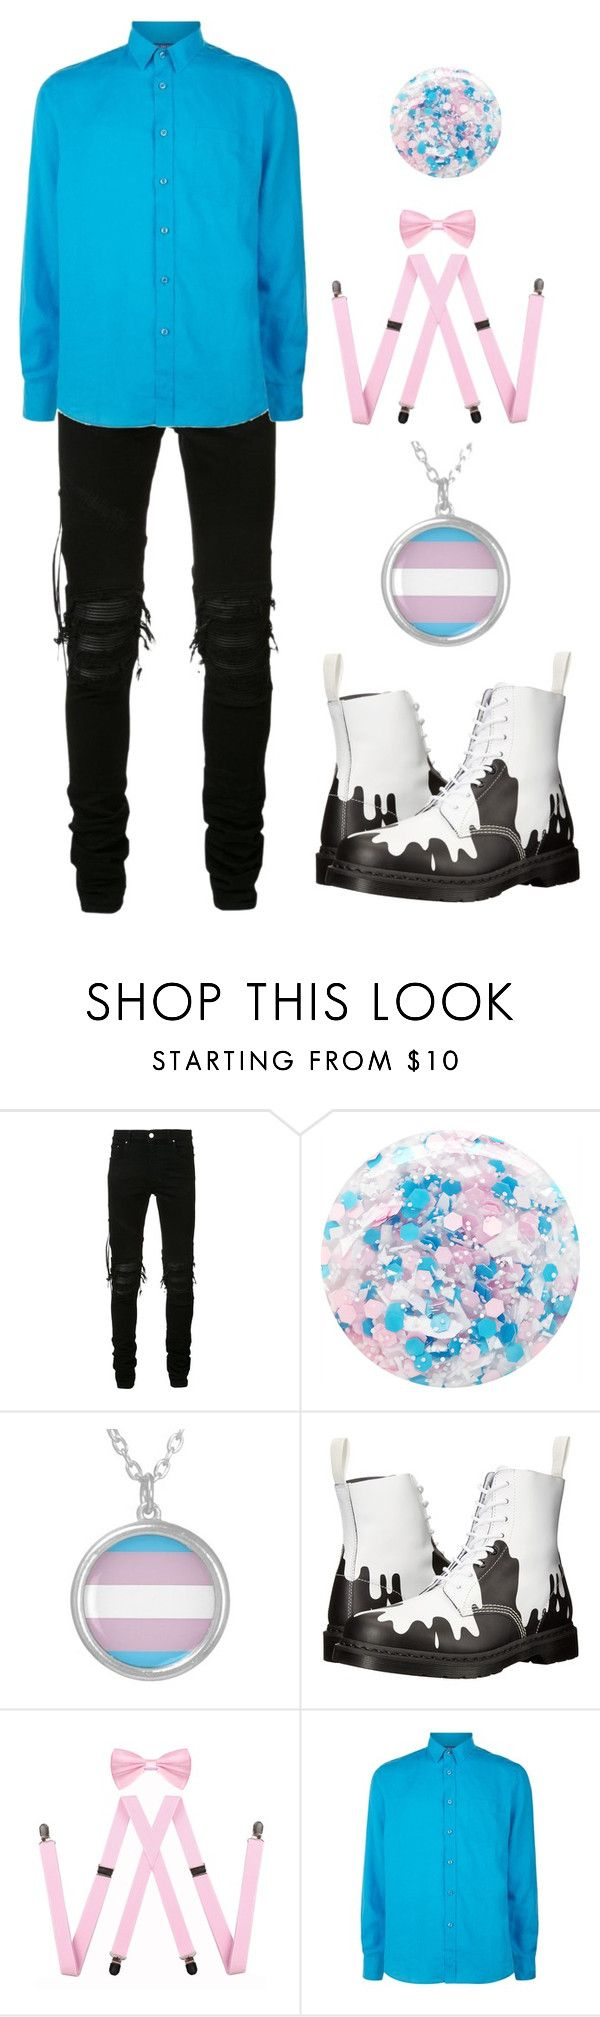 """transgender pride ftm"" by smolxboi ❤ liked on Polyvore featuring AMIRI, Nails Inc., Dr. Martens, Vilebrequin, men's fashion and menswear"